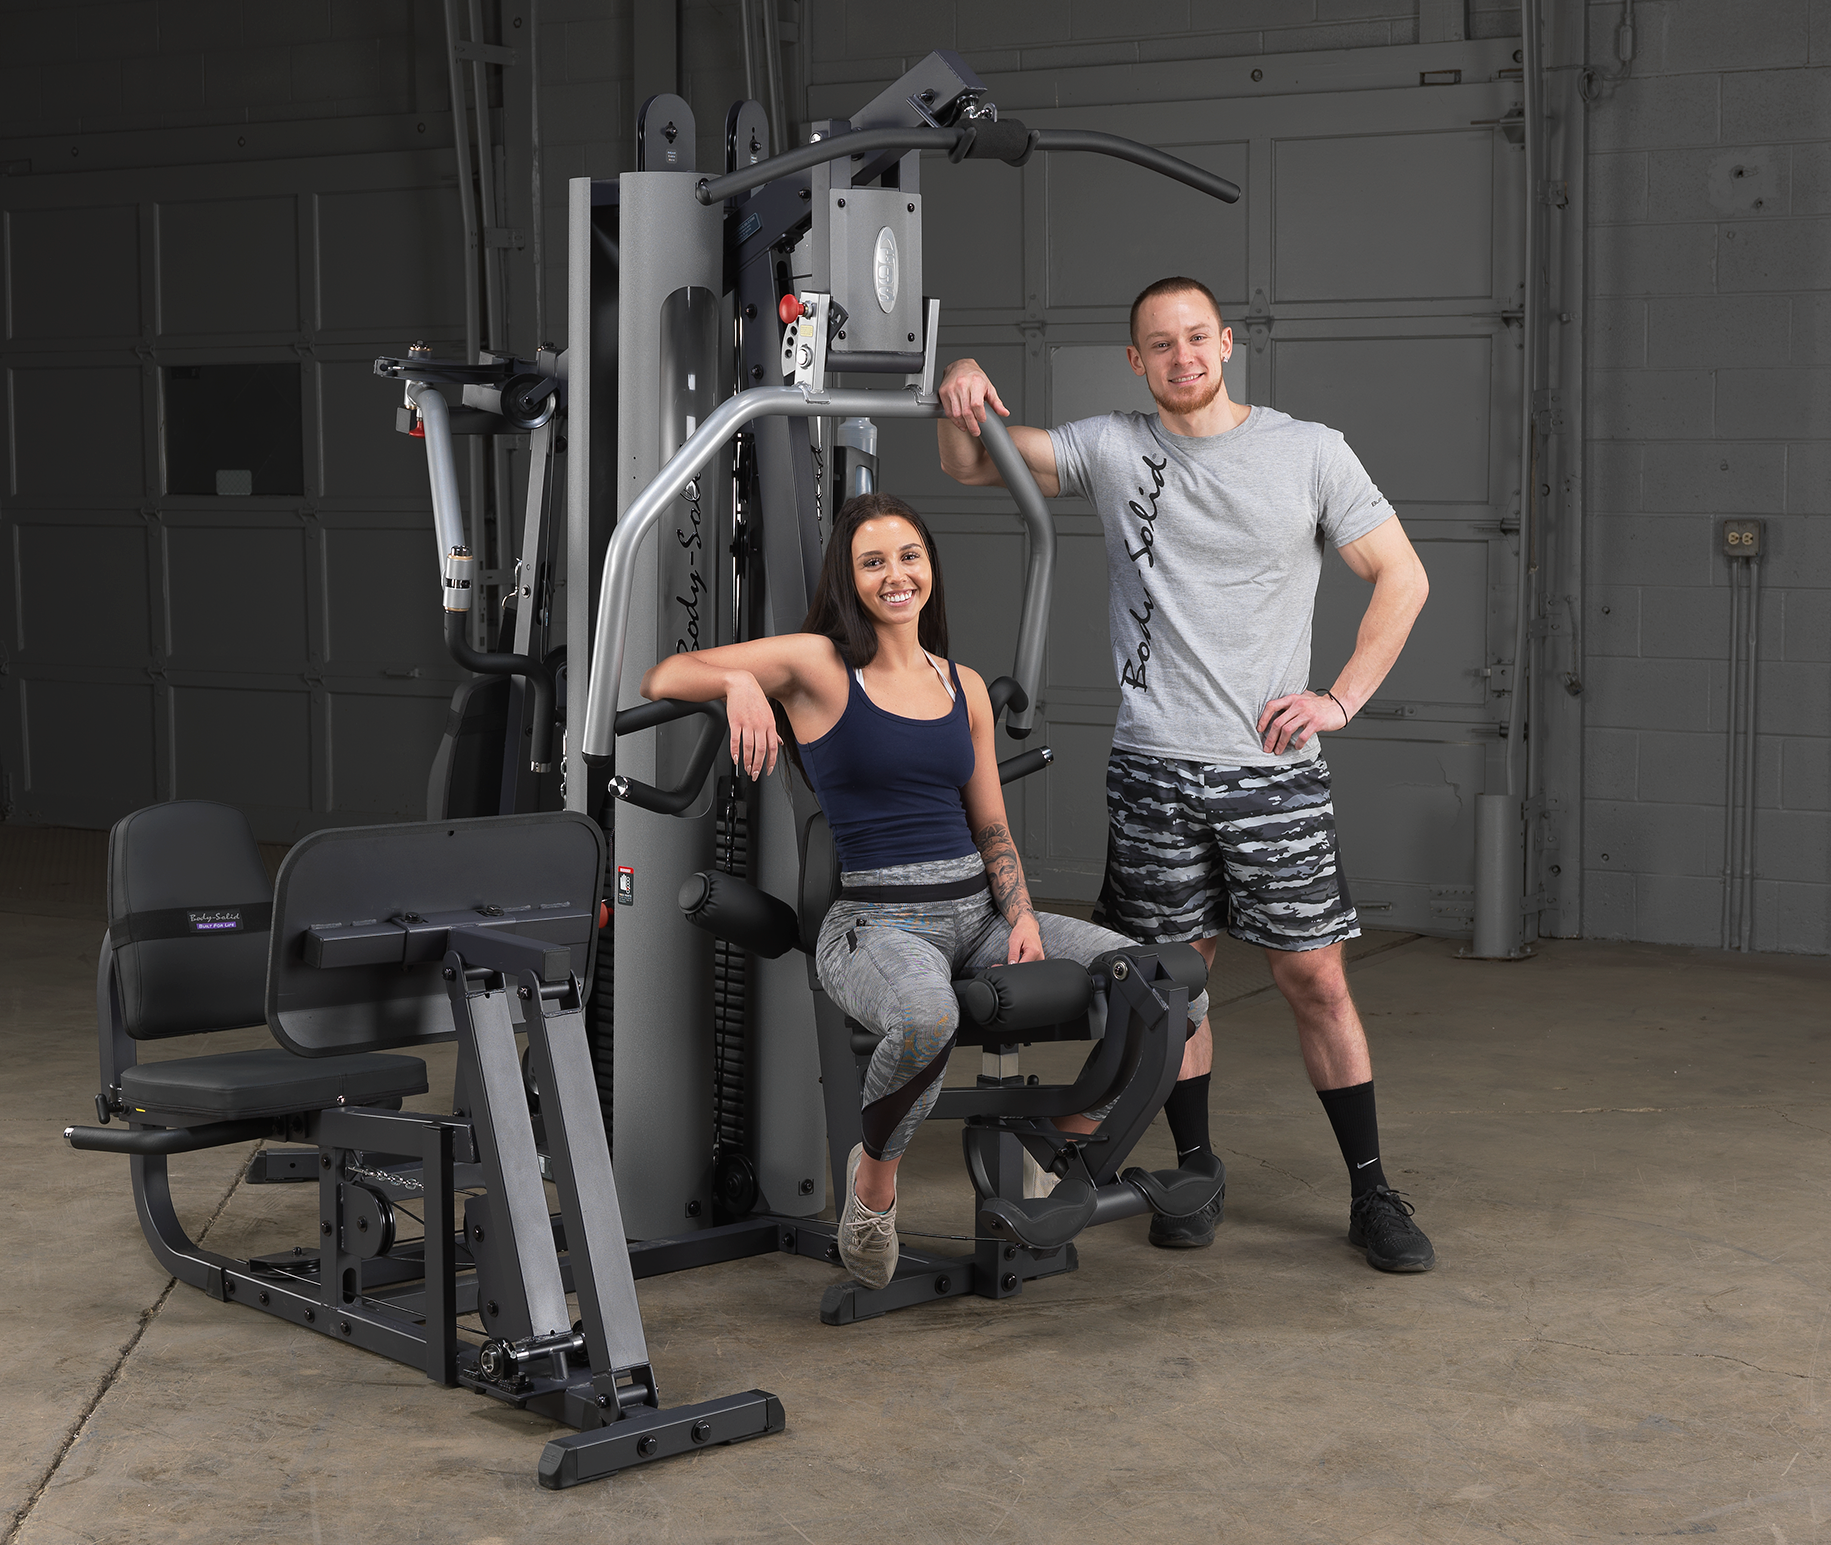 the third entry on our list is the best bang for your buck the G9S Home Gym from Body-Solid